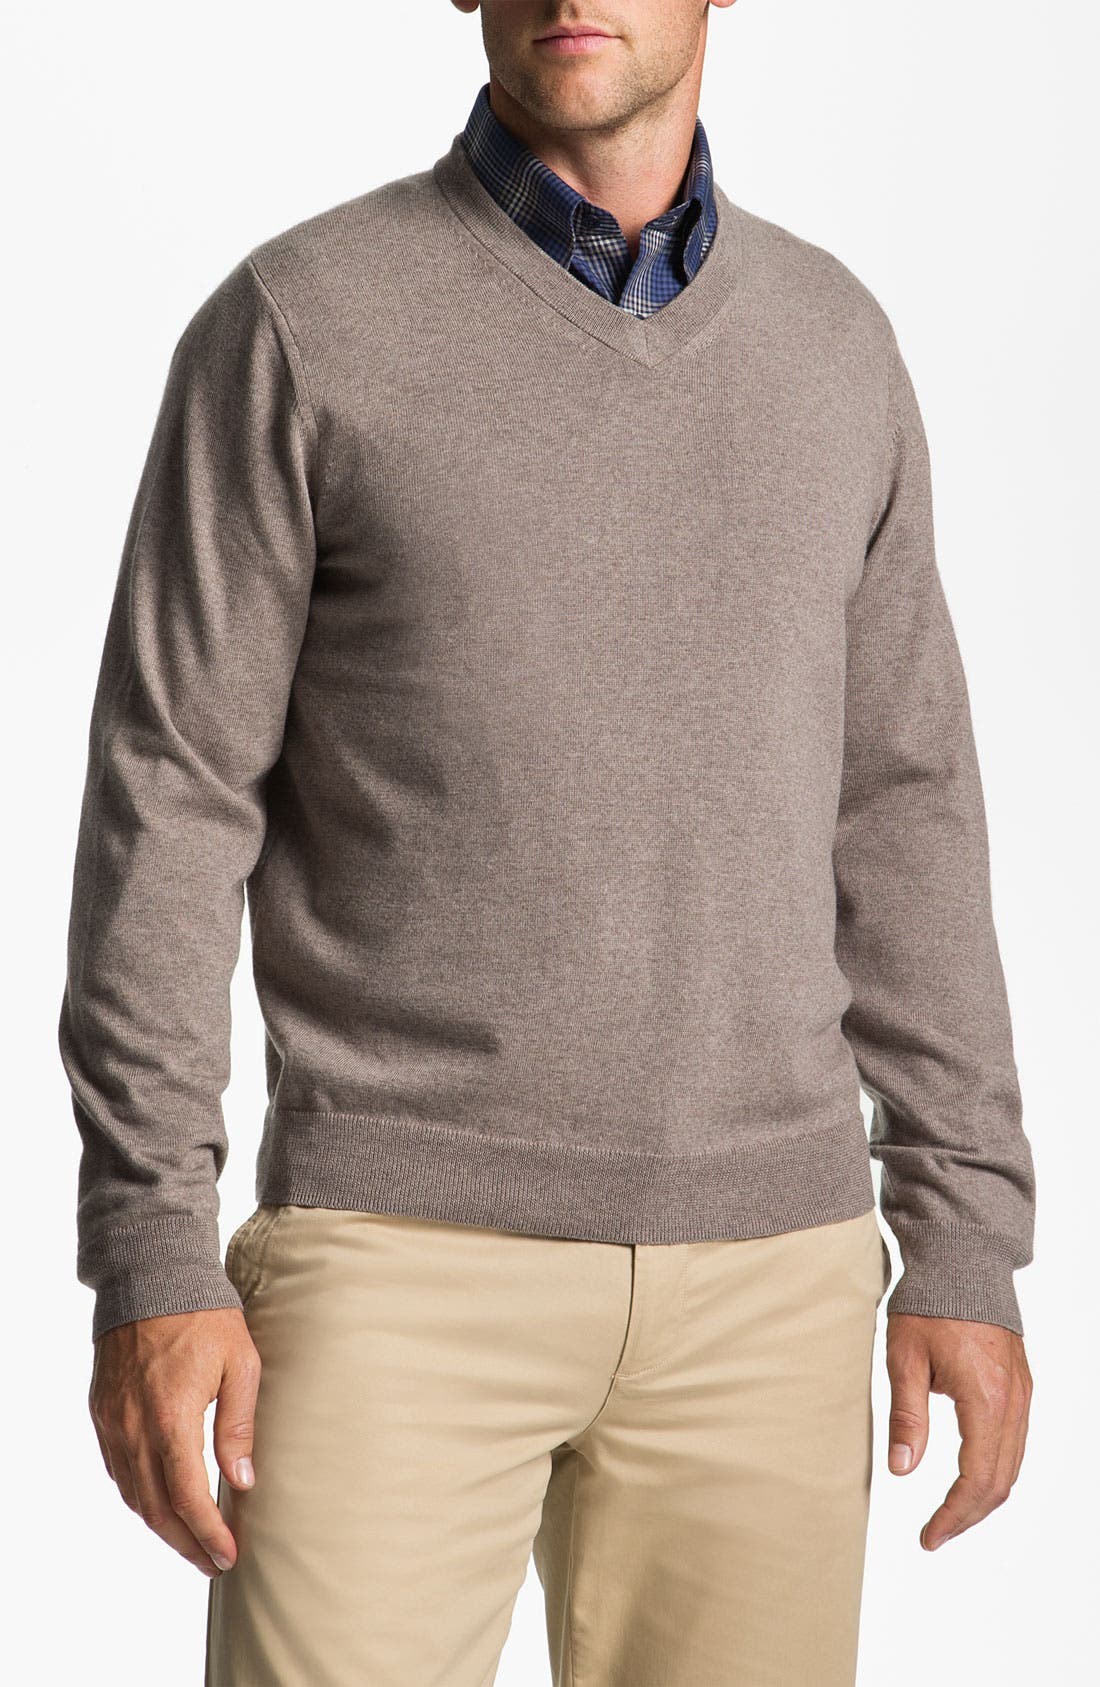 Alternate Image 1 Selected - Nordstrom V-Neck Merino Wool Sweater